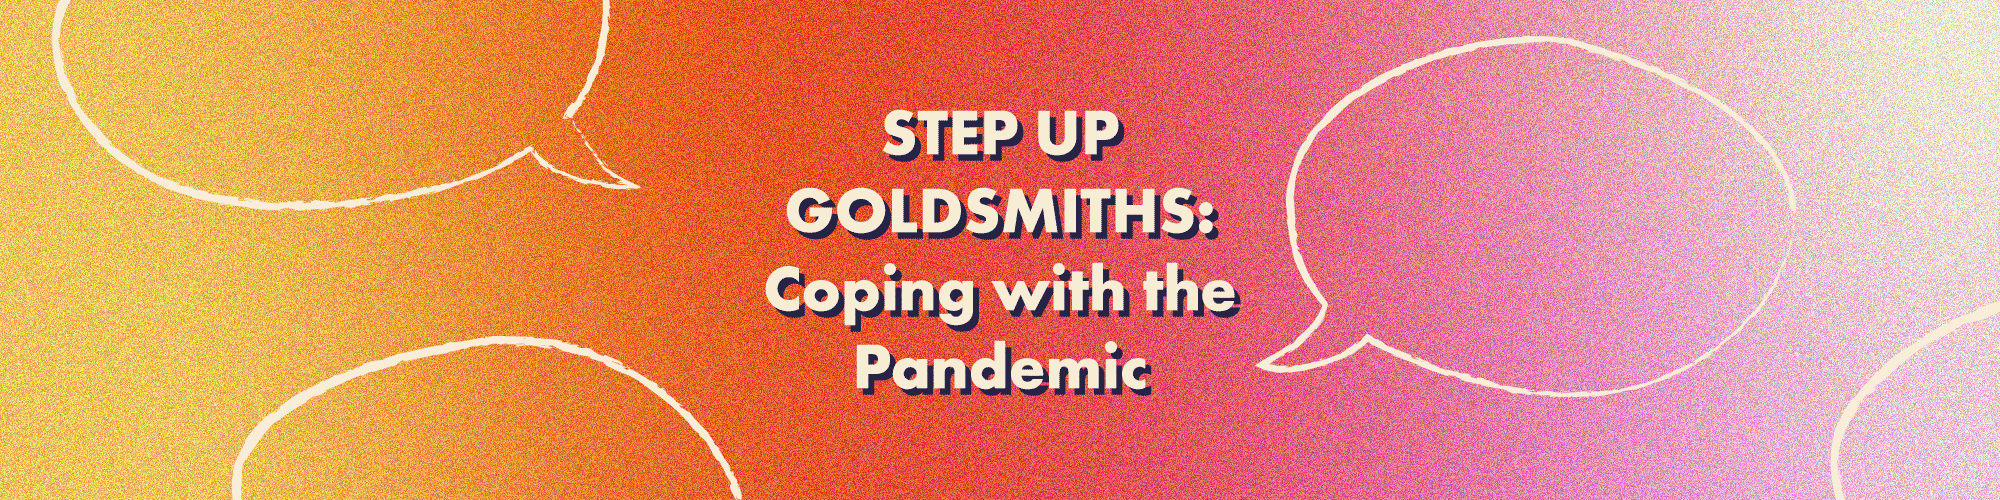 Goldsmiths History Society Presents 'Coping with the Pandemic'